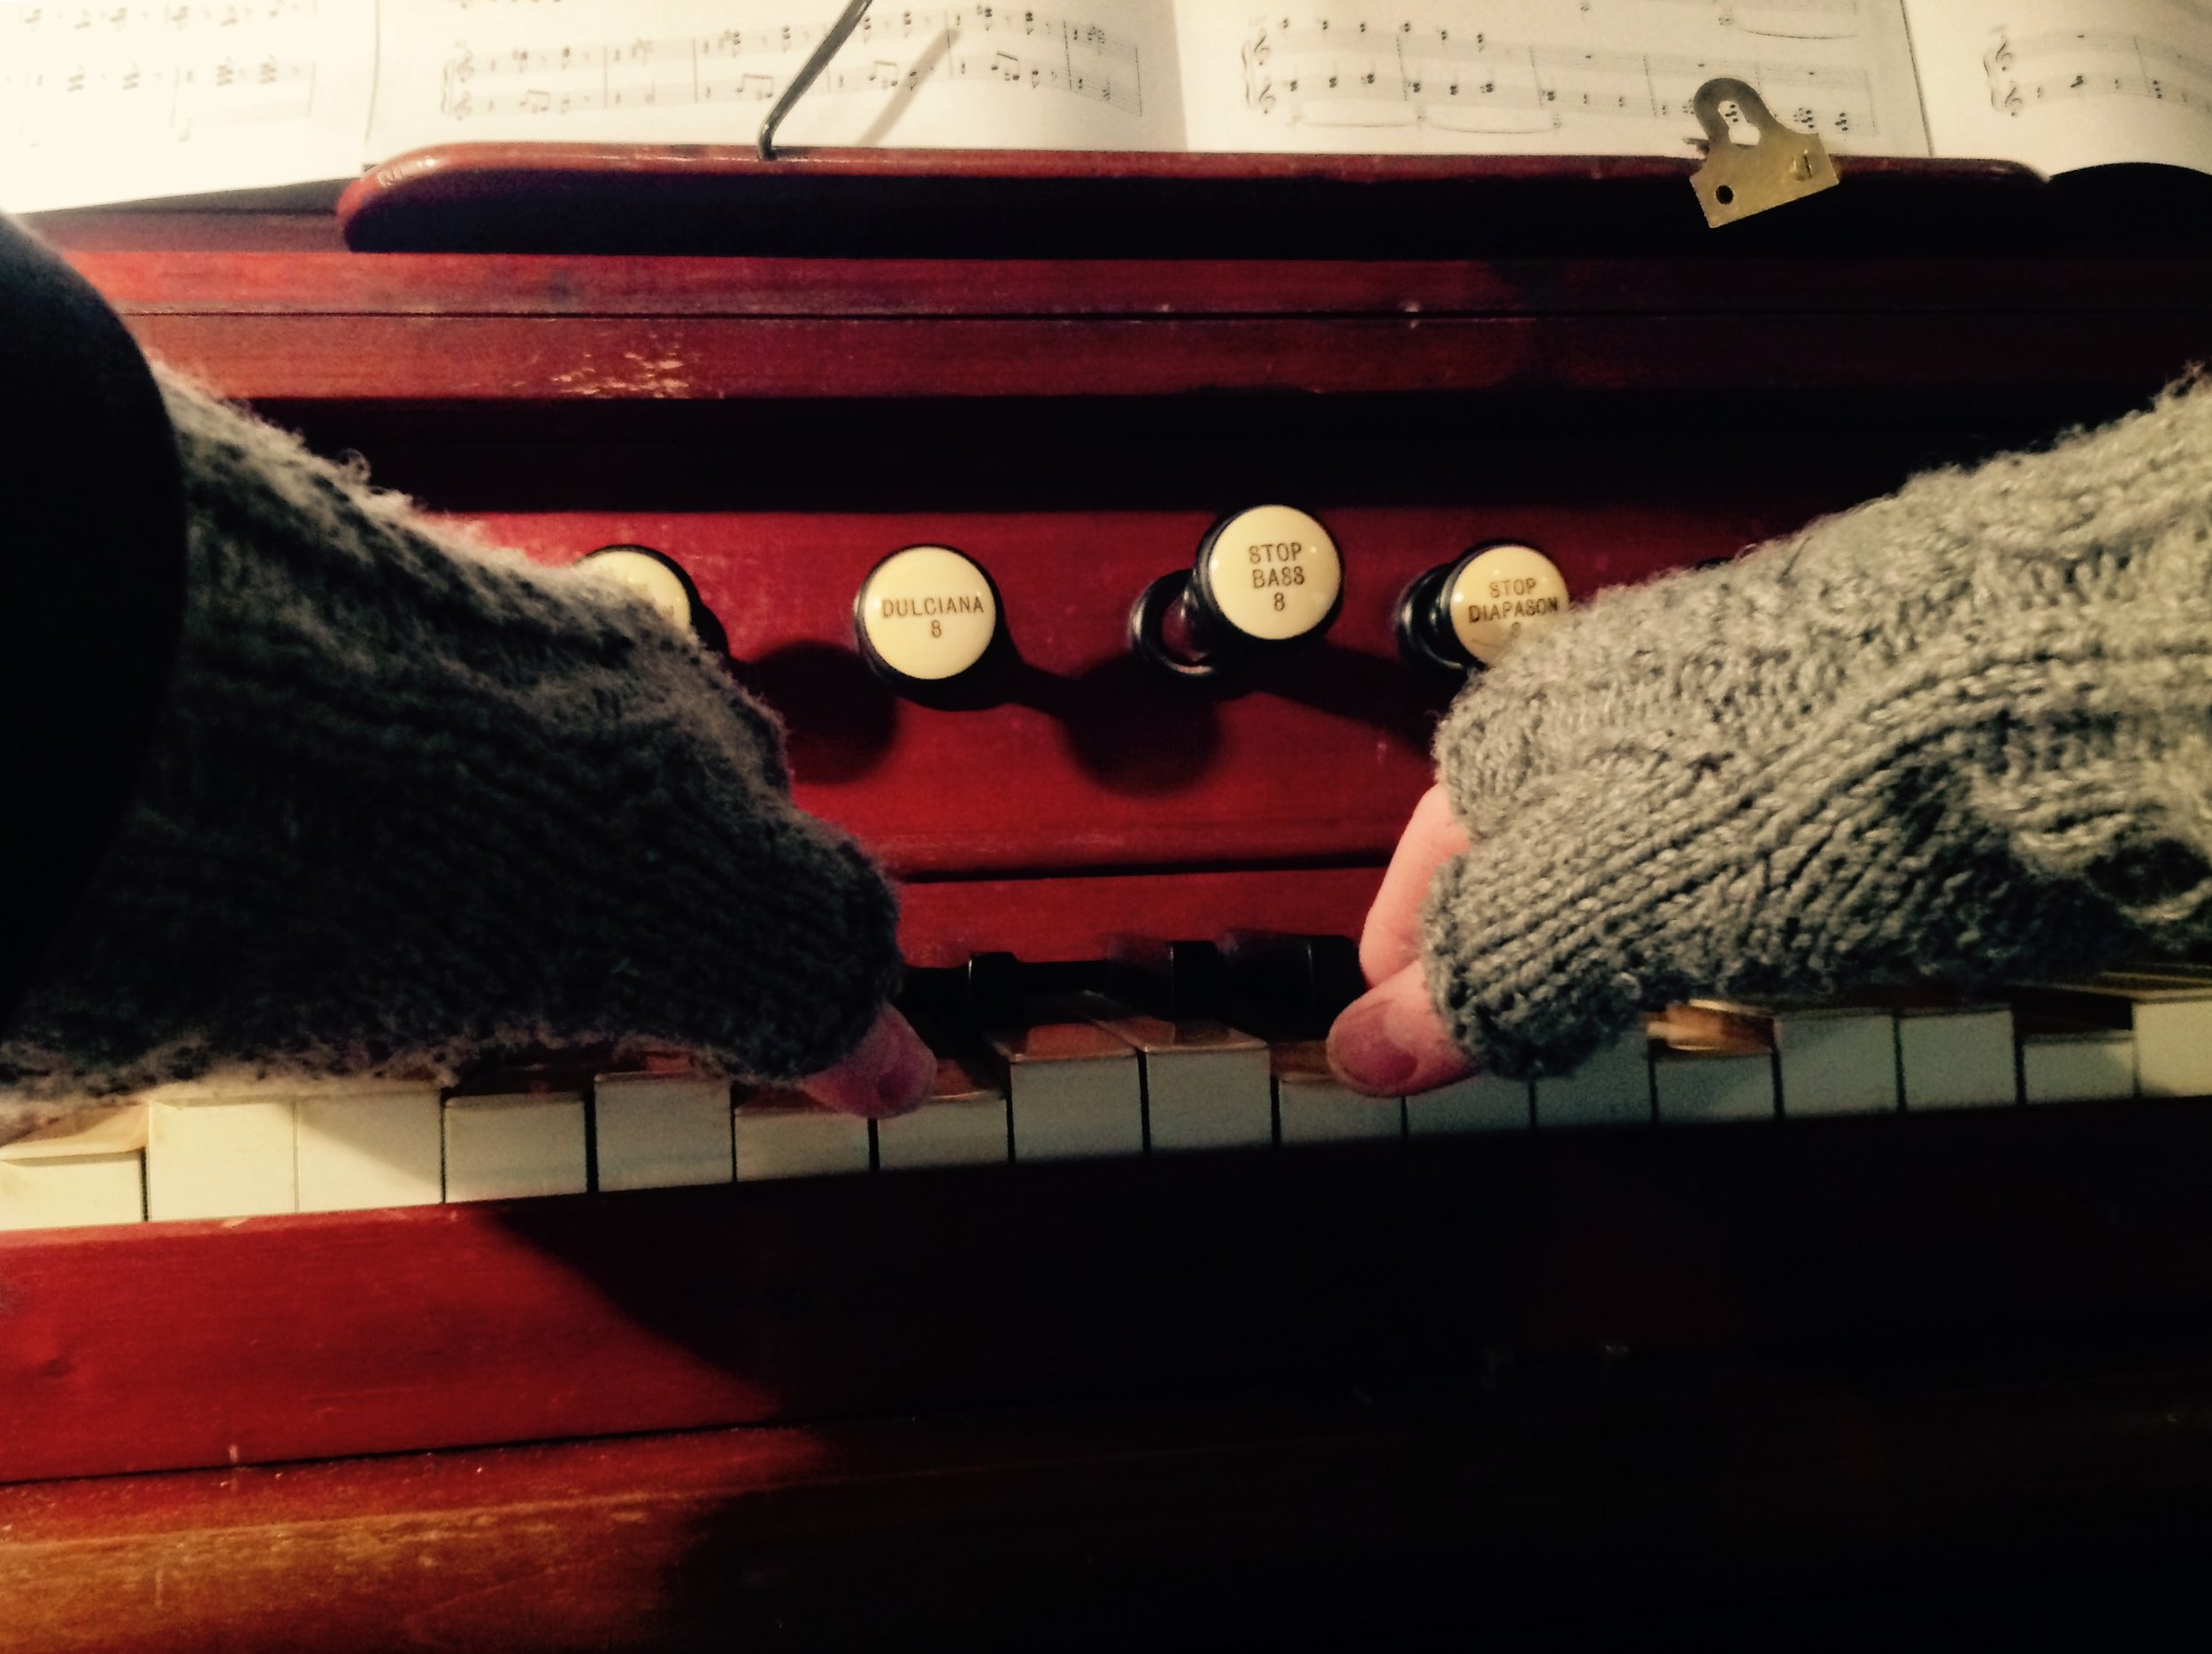 Fingerless gloves are an essential for any organ winter session in an unheated 12th Century church